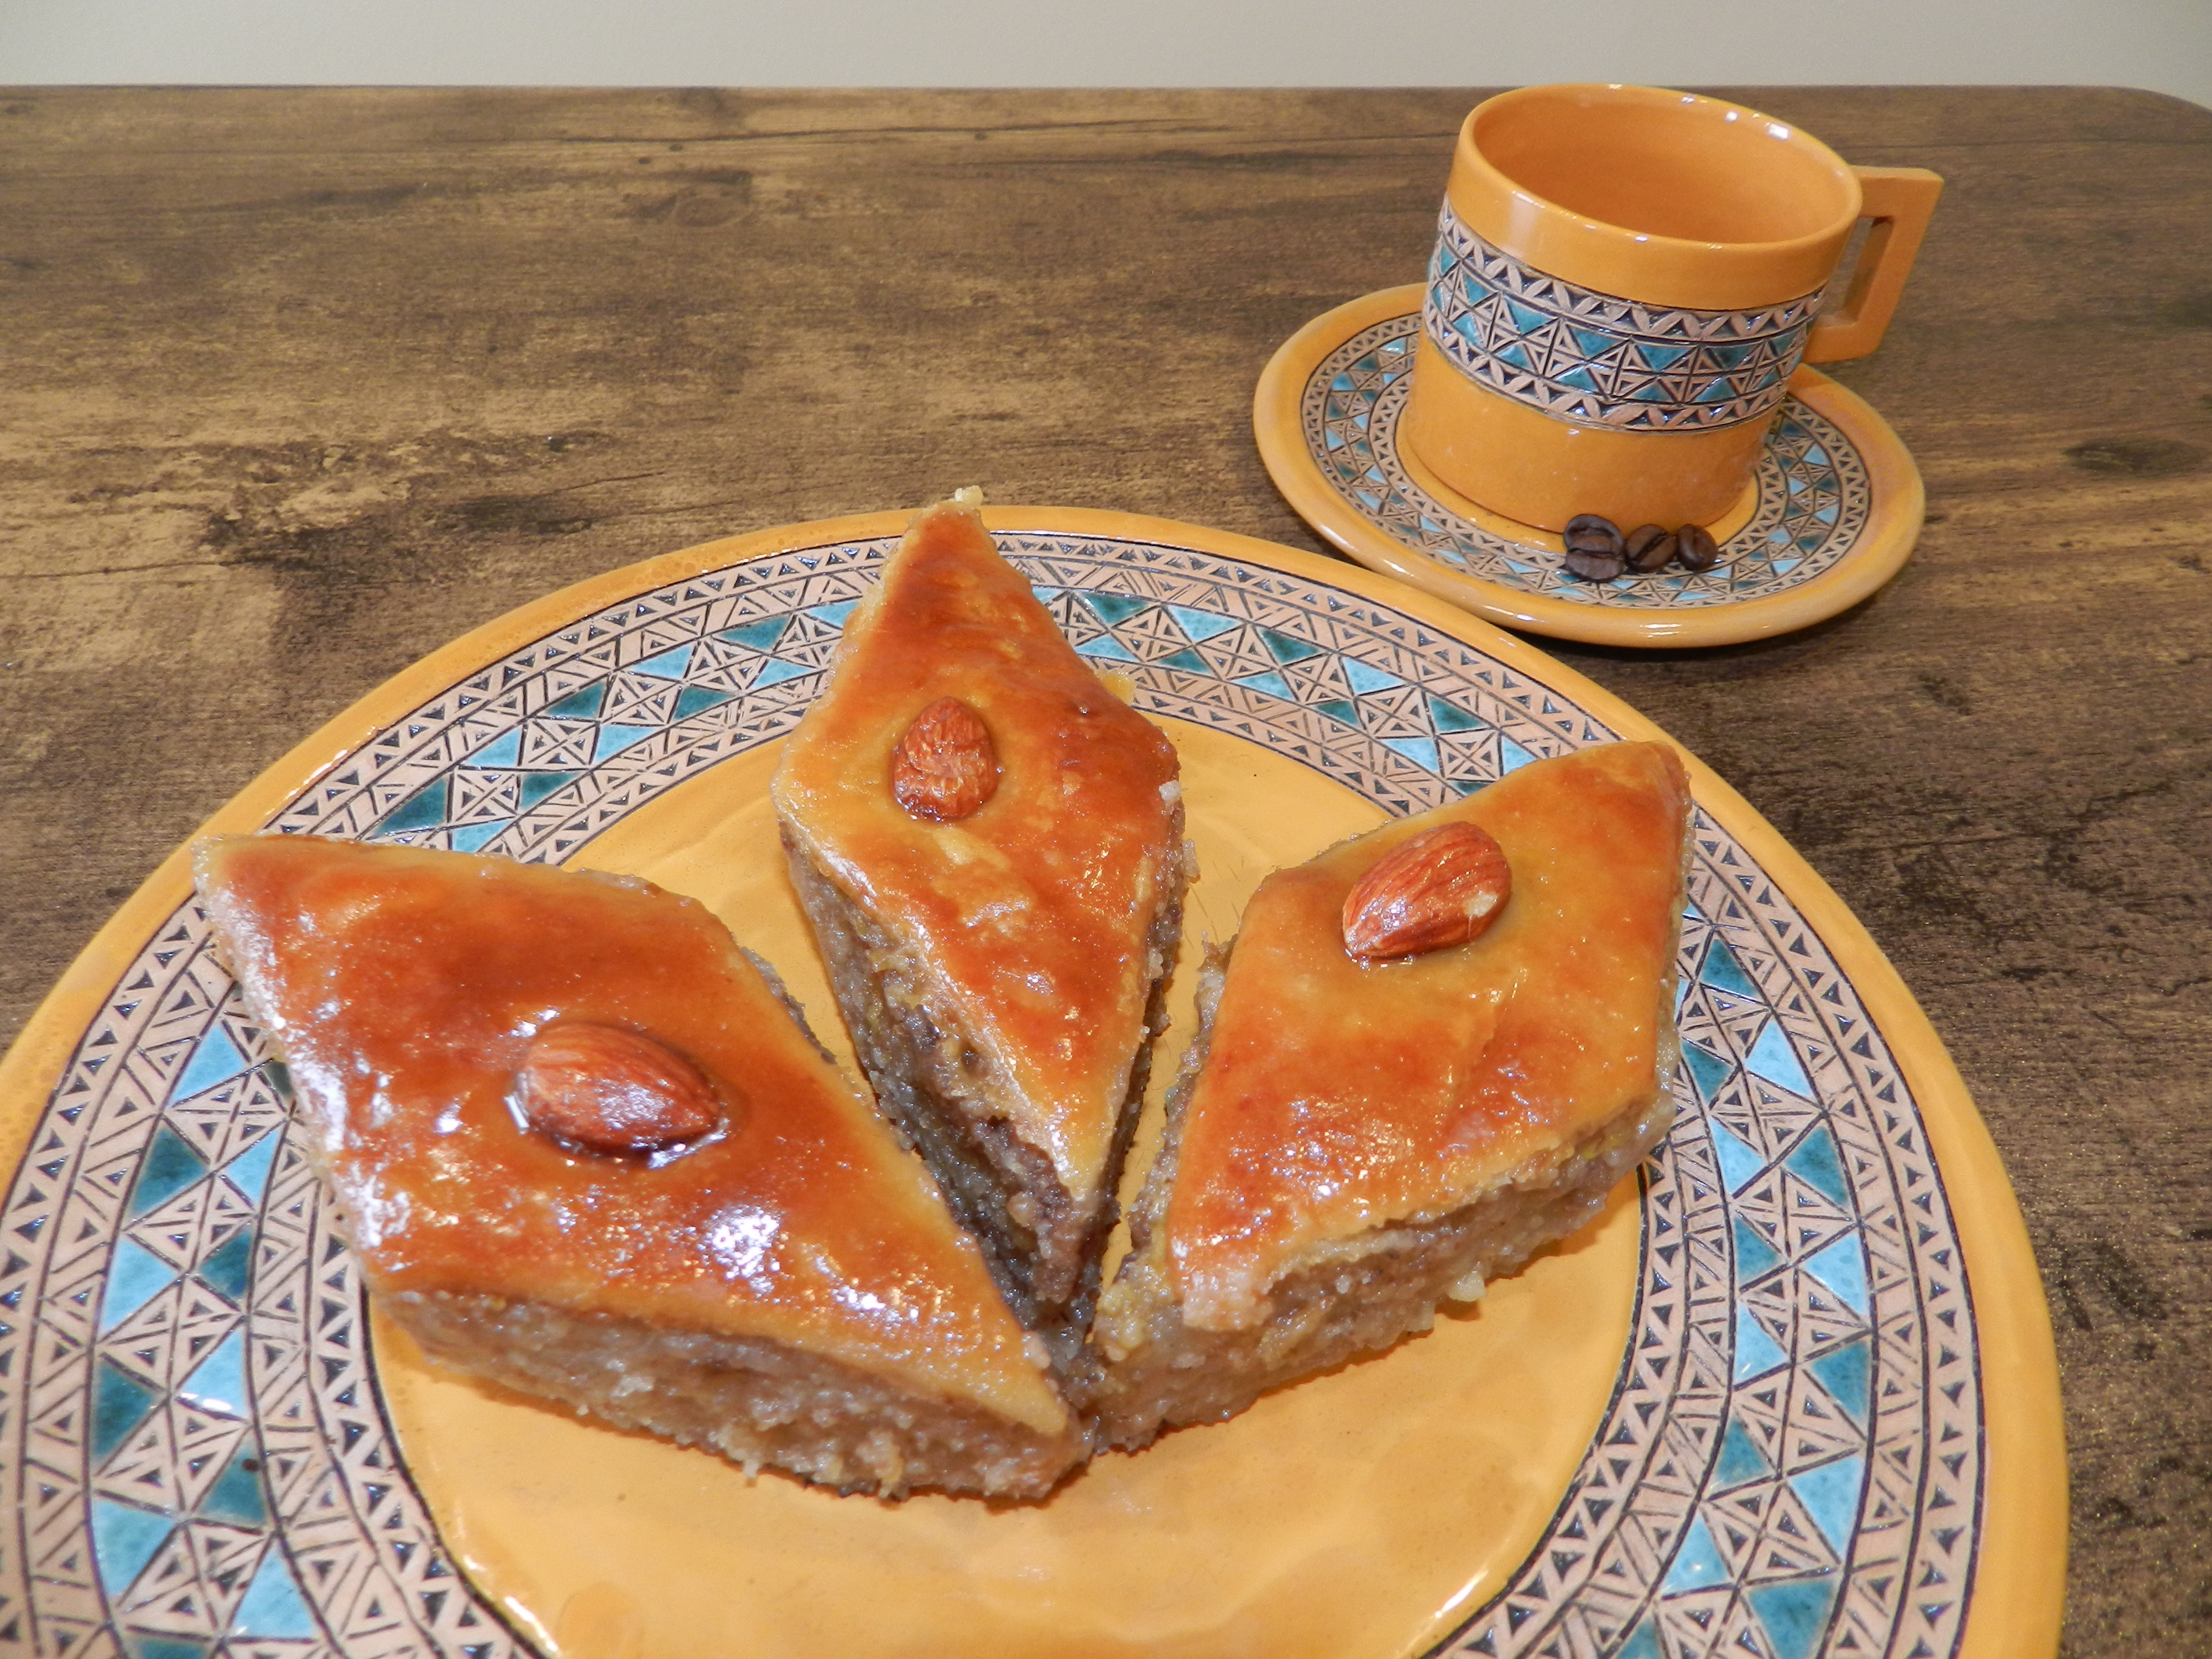 Baklava with walnuts is served on intricately-decorated plates from Armenia